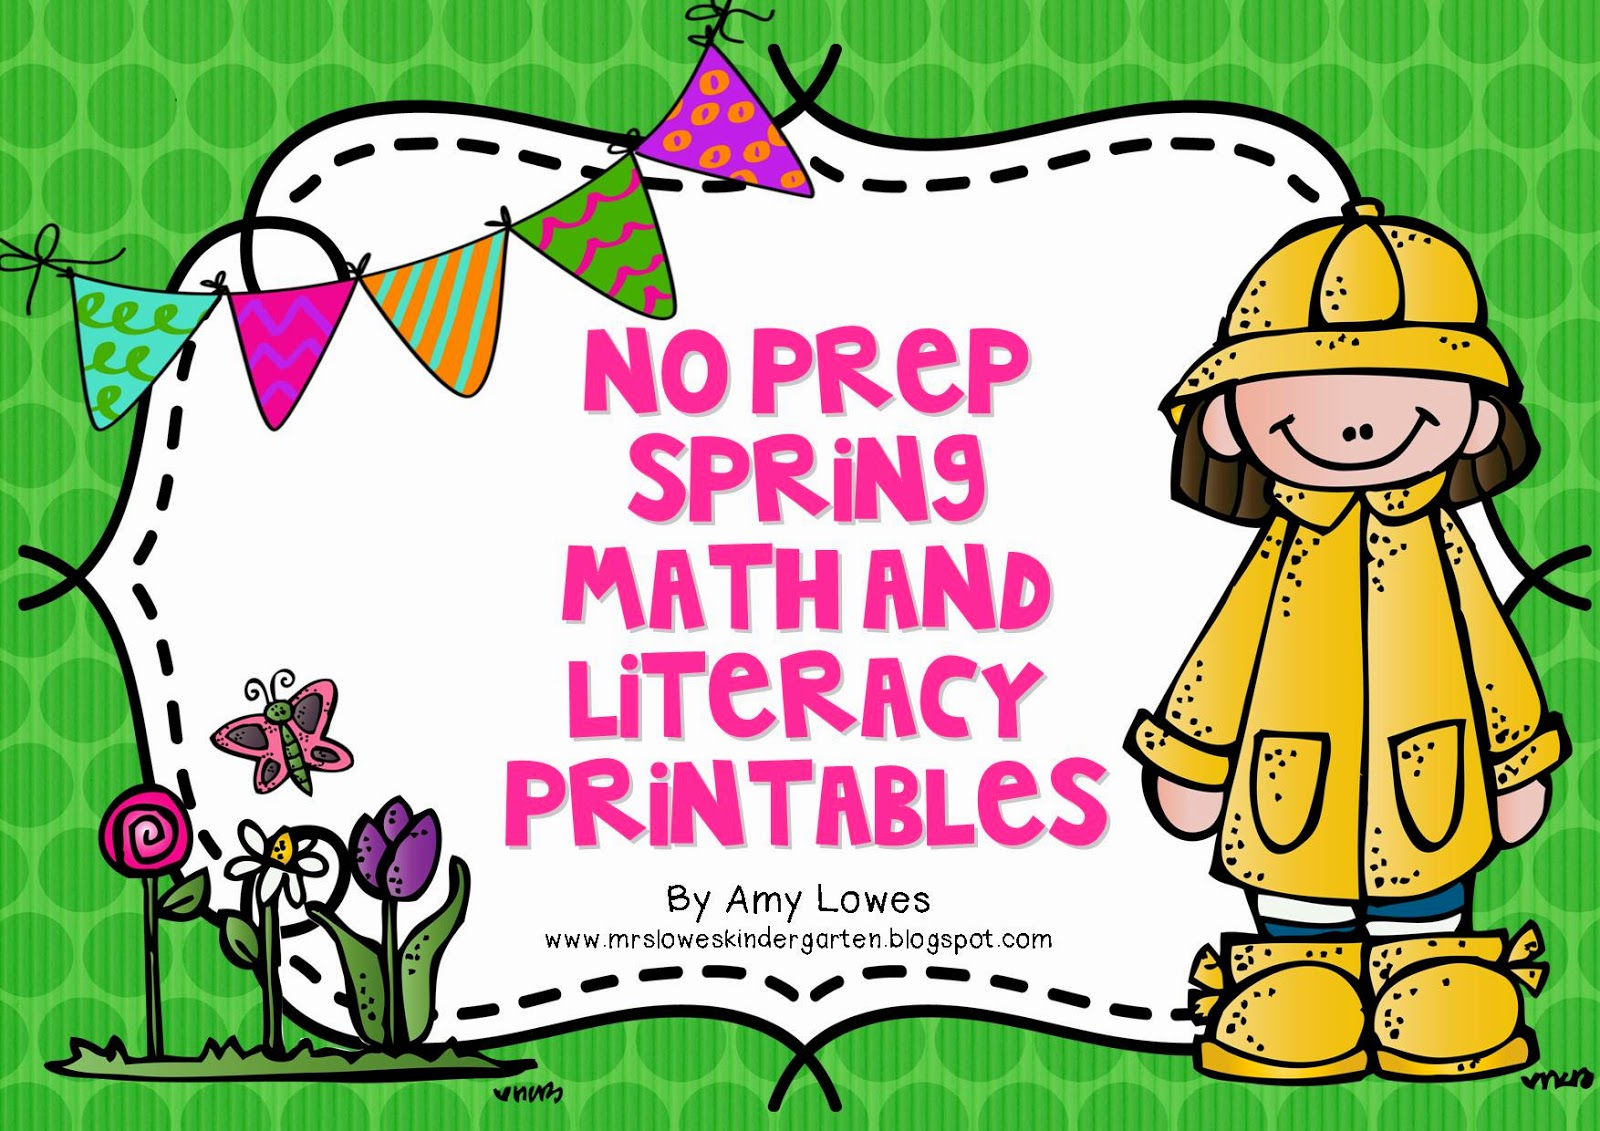 http://www.teacherspayteachers.com/Product/No-Prep-Spring-Math-and-Literacy-Printables-1101129